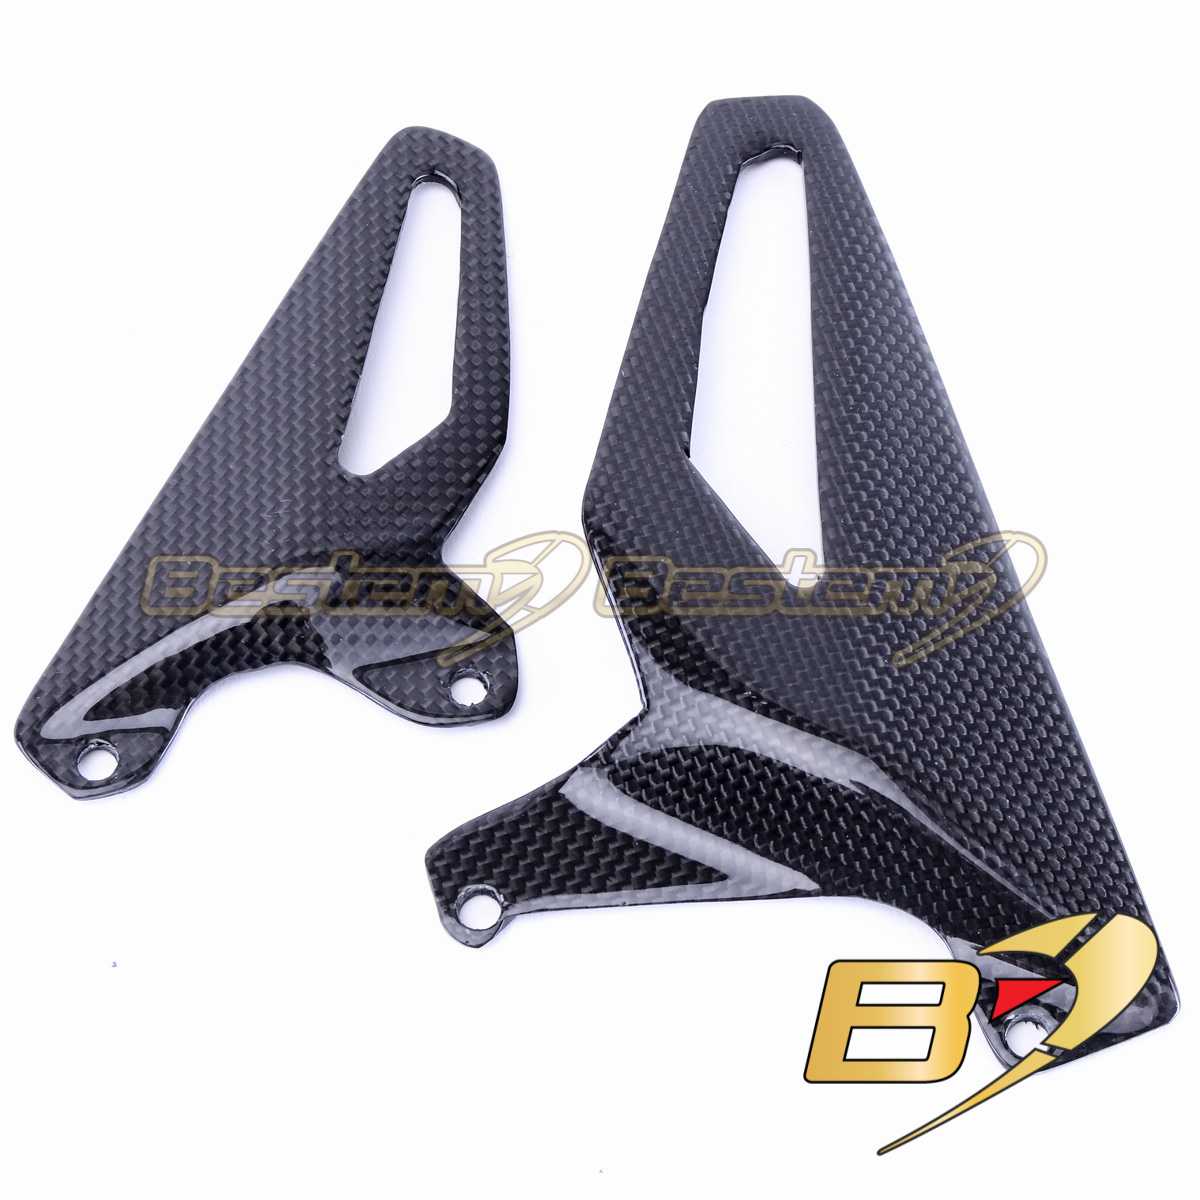 Ducati Panigale V4 Carbon Fiber Heel Guards Rearset Plates